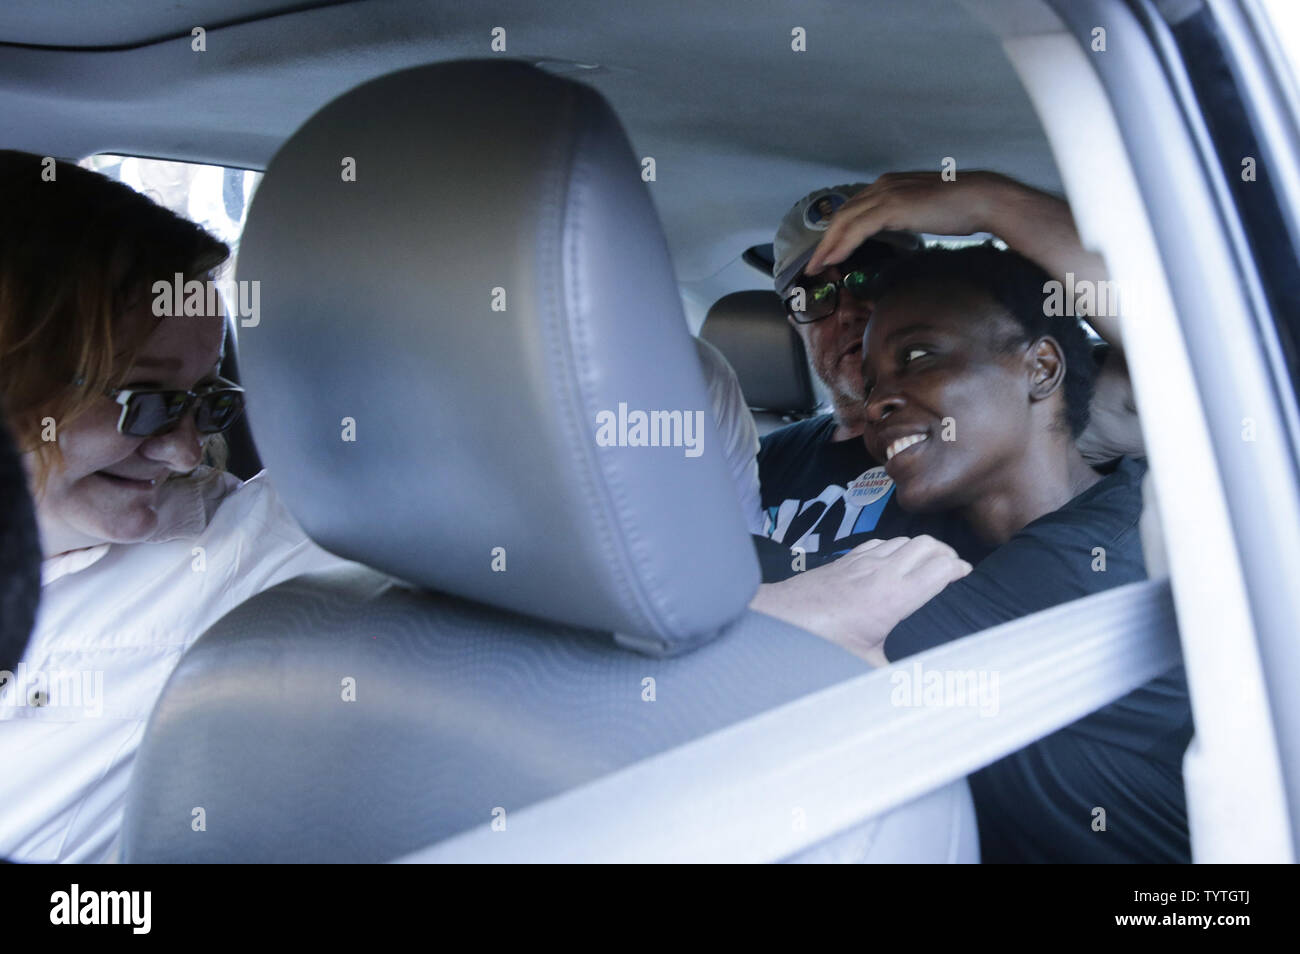 Statue Of Liberty climber and Rise and Resist protester Therese Okoumou smiles as she waits for the car to depart after she exits Court with supporters in New York City on July 5, 2018 in New York City. The woman who partially climbed up the Statue of Liberty on July 4th Independence Day and prompted authorities to evacuate Liberty Island was released without bail, and if convicted would face up to six months behind bars.    Photo by John Angelillo/UPI Stock Photo